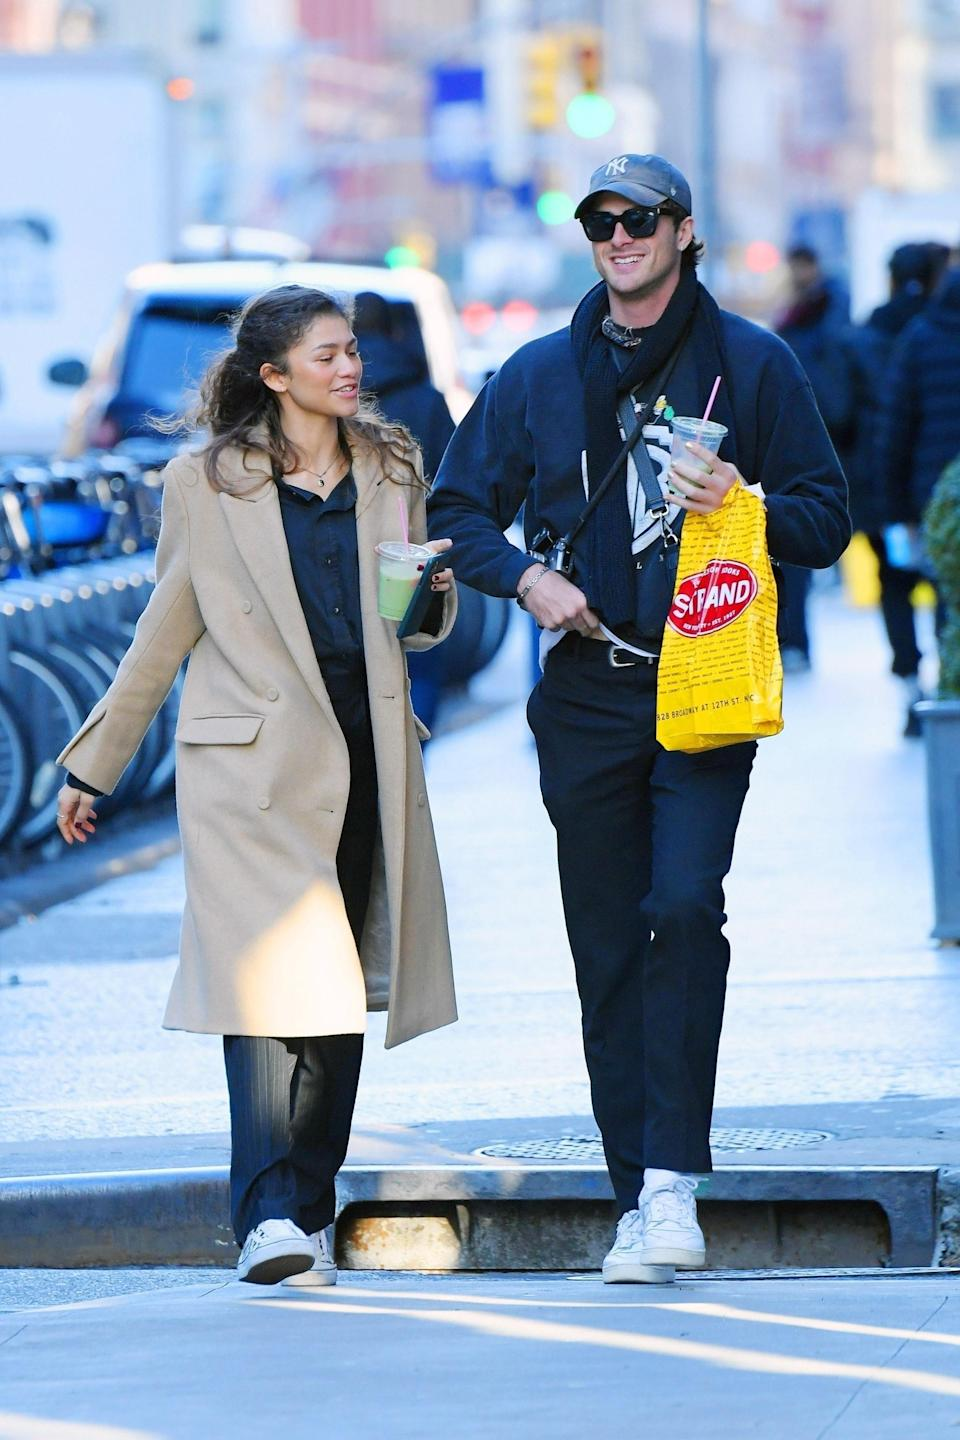 Tom dated family friend Olivia Bolton from July 2019to April 2020. And in February 2020, Zendaya was seen sharing cute PDA moments out and about in New York City with Euphoria co-star Jacob Elordi, before hebegan dating Kaia Gerberin September.